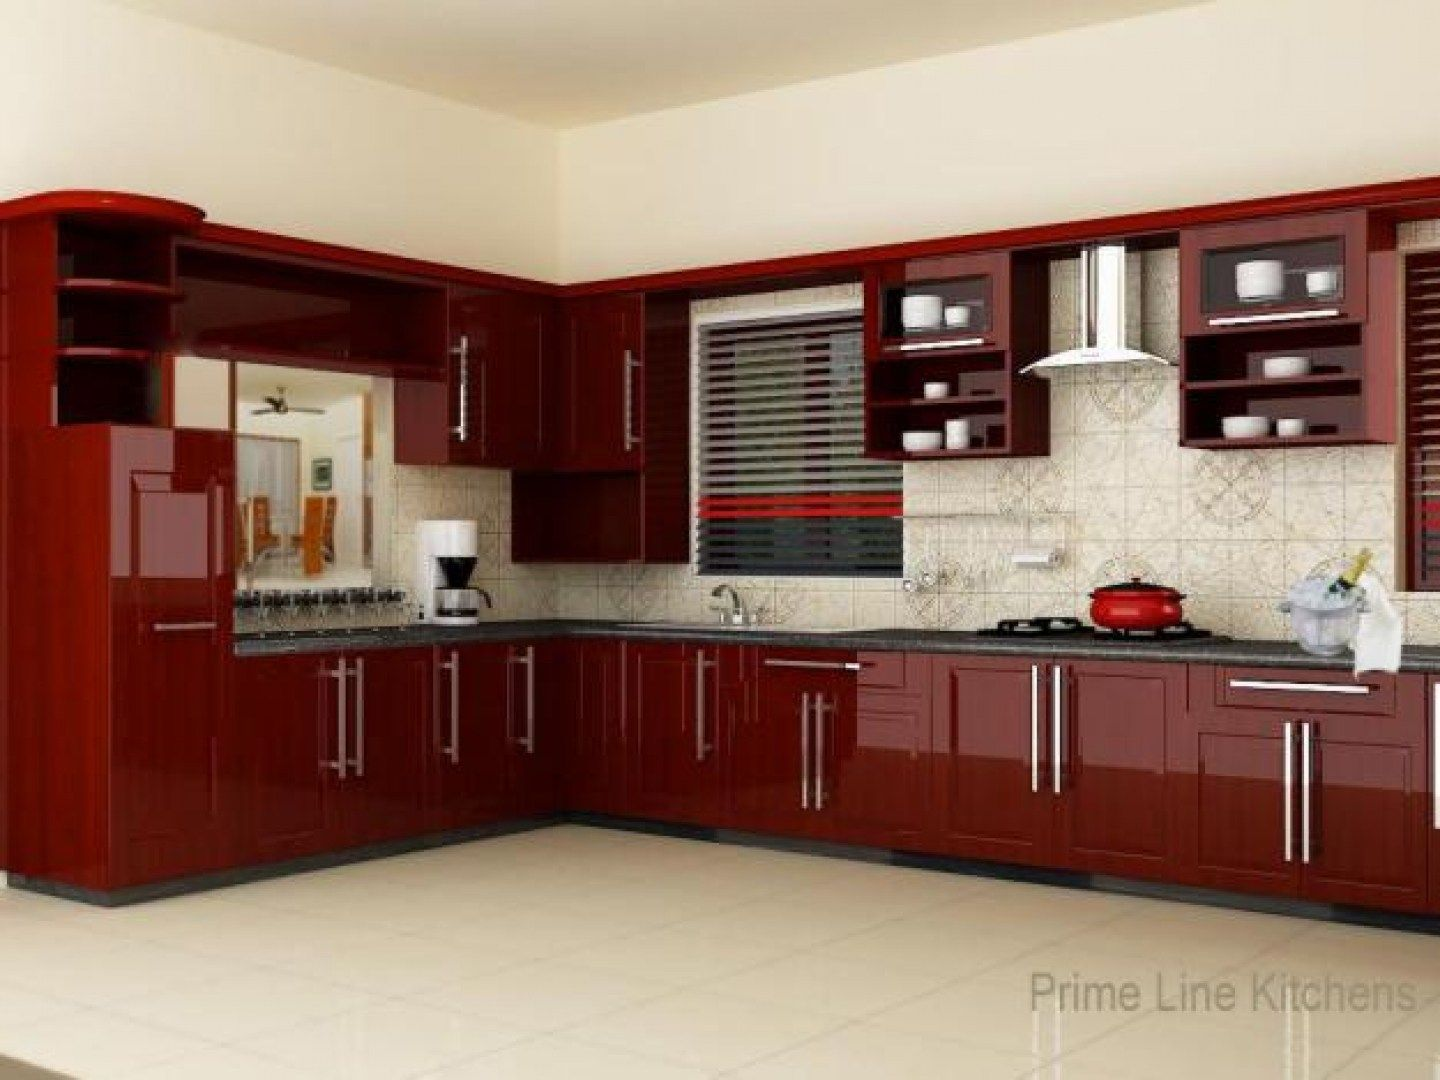 Kitchen design ideas kitchen woodwork designs hyderabad Kitchen cabinet designs